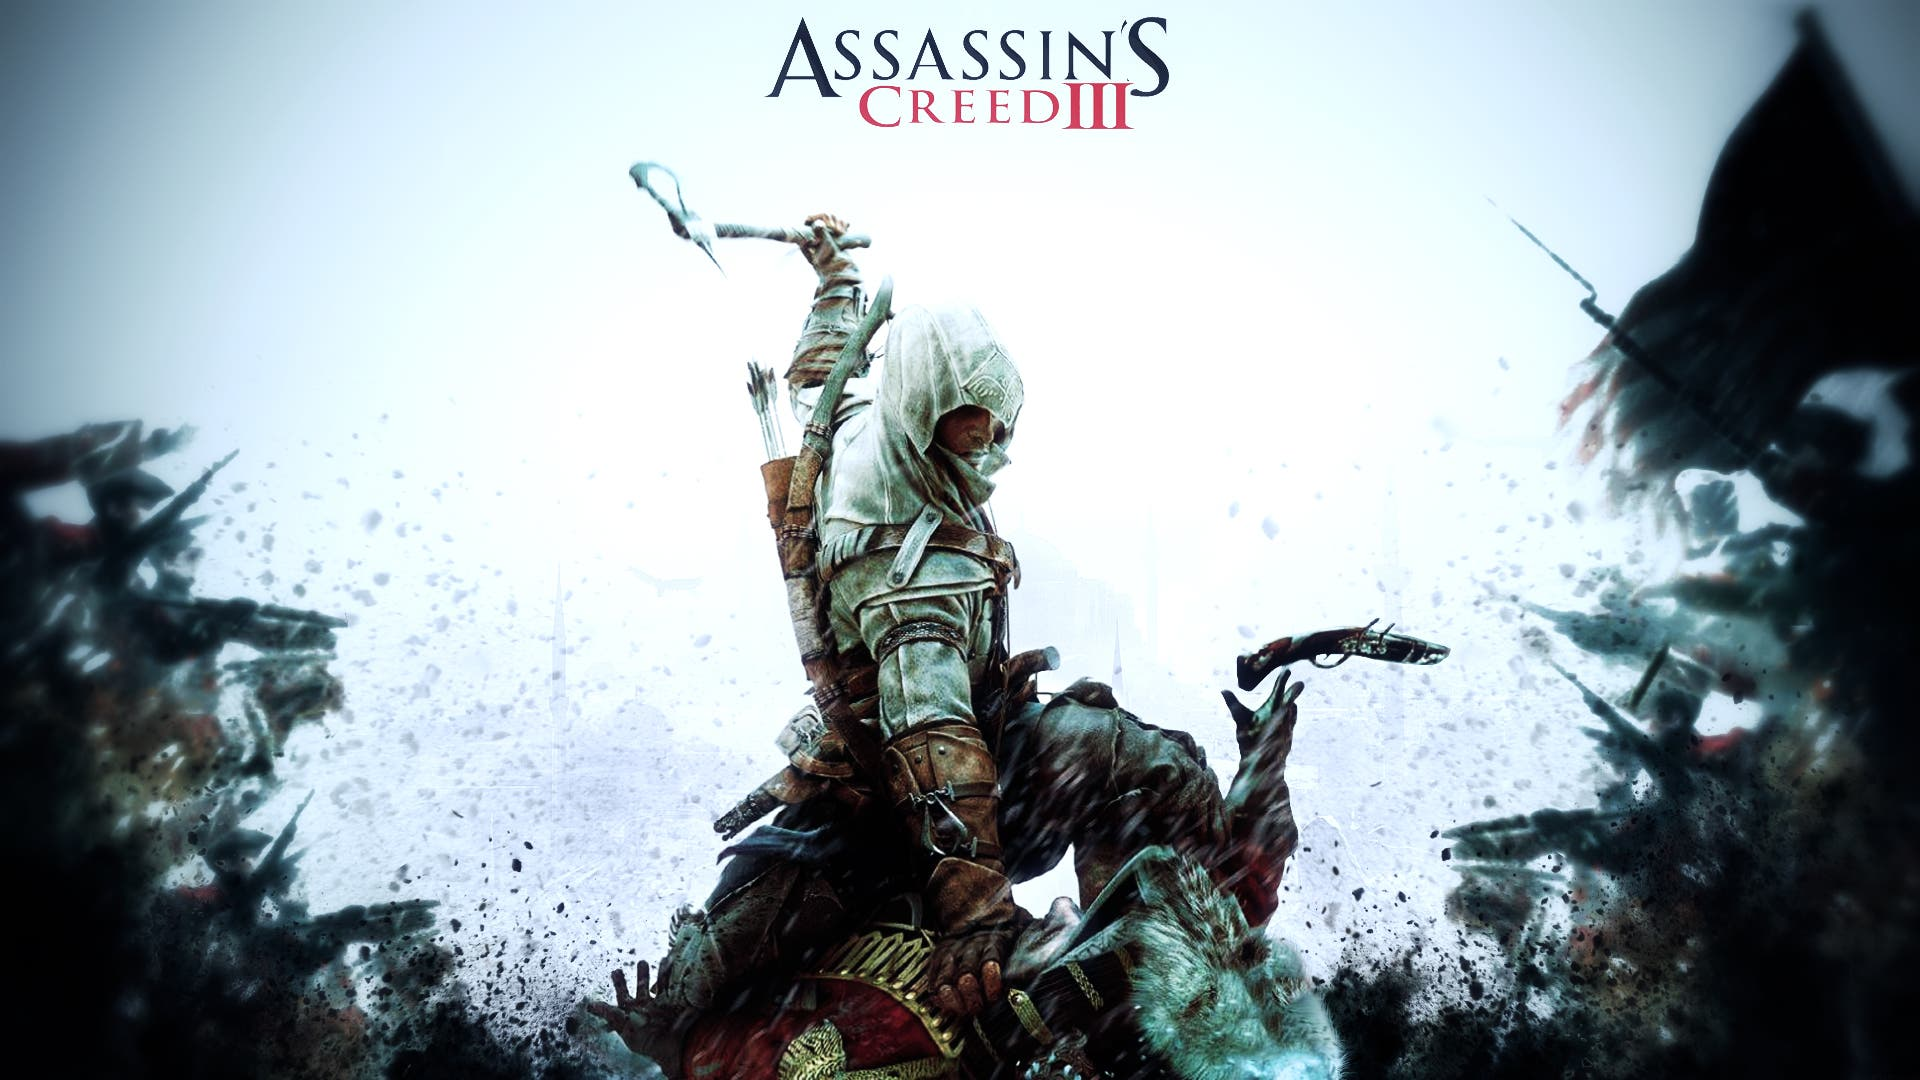 Assassin S Creed Iii Review Saving Content